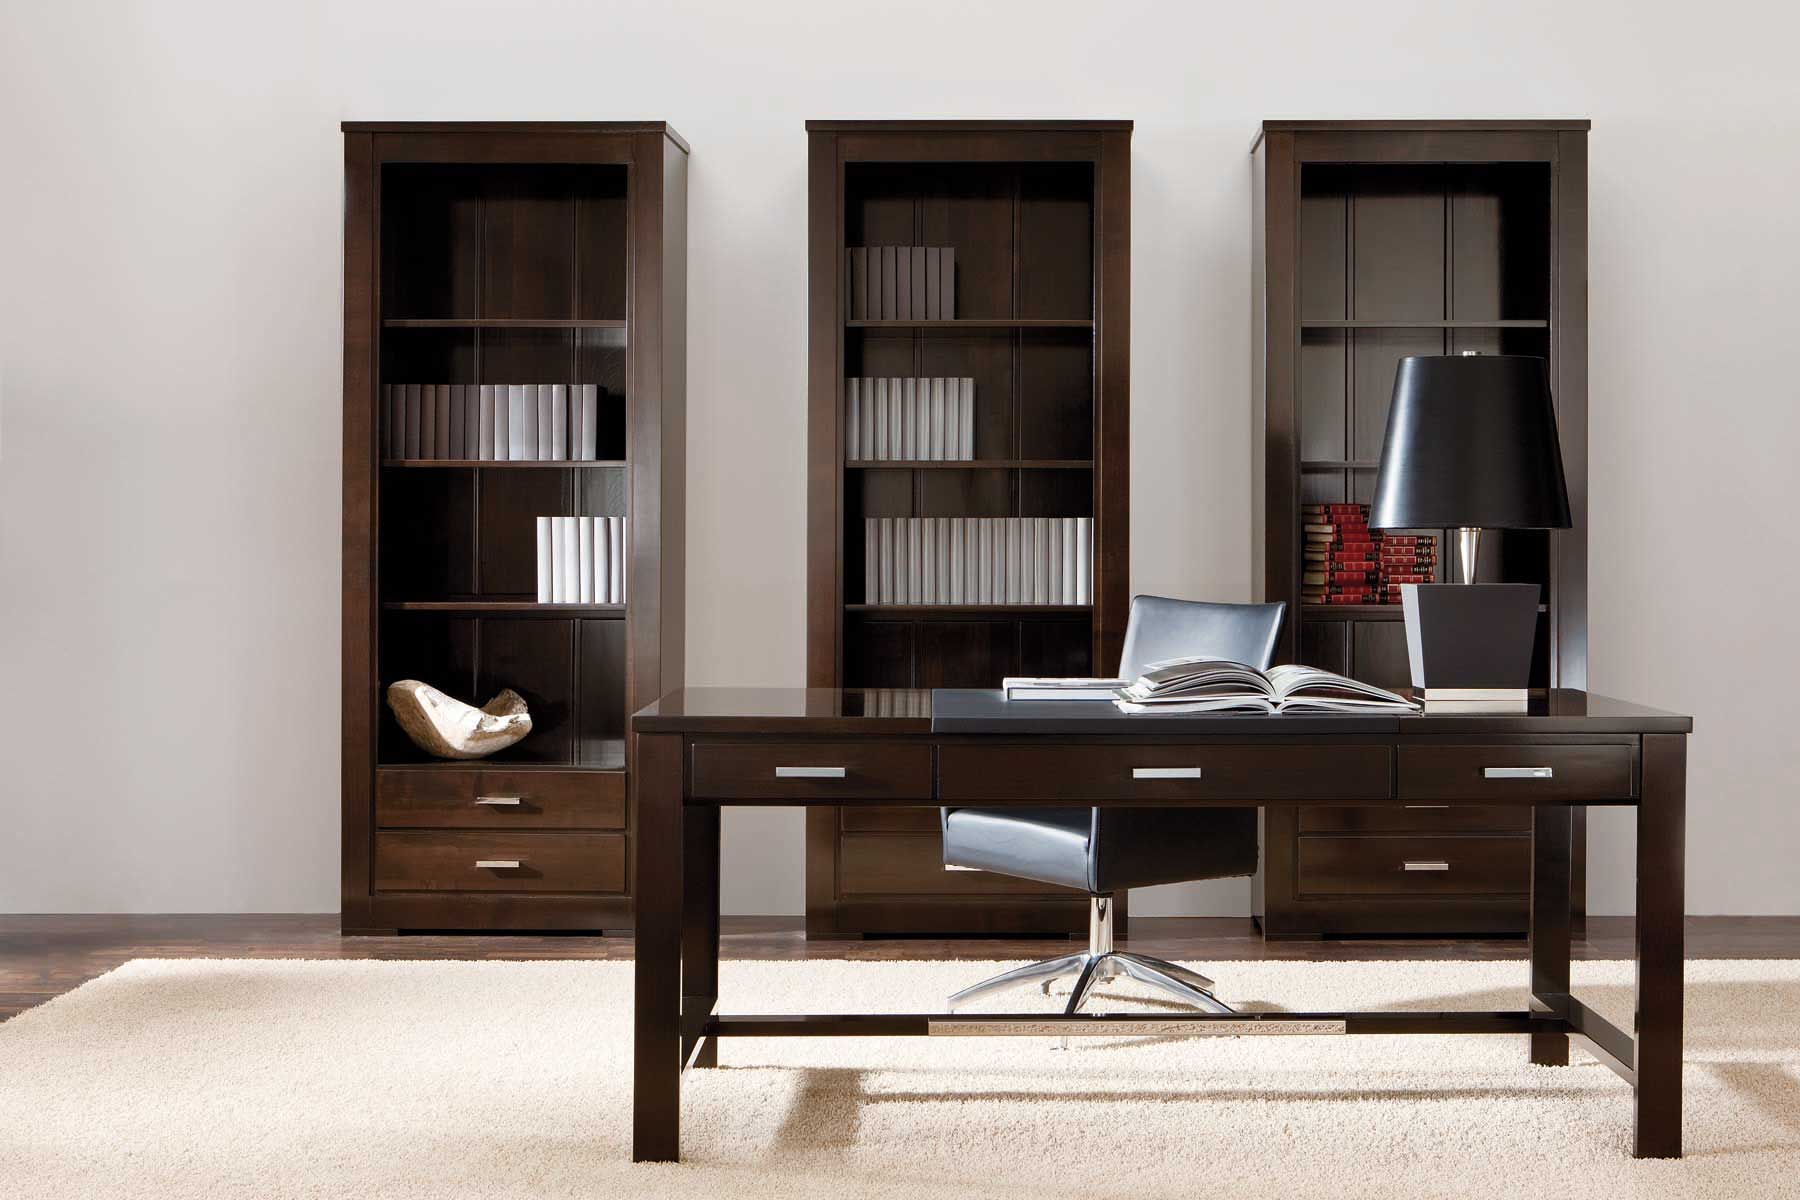 Form-Exclusiv_desk-cabinet_cherry-wood